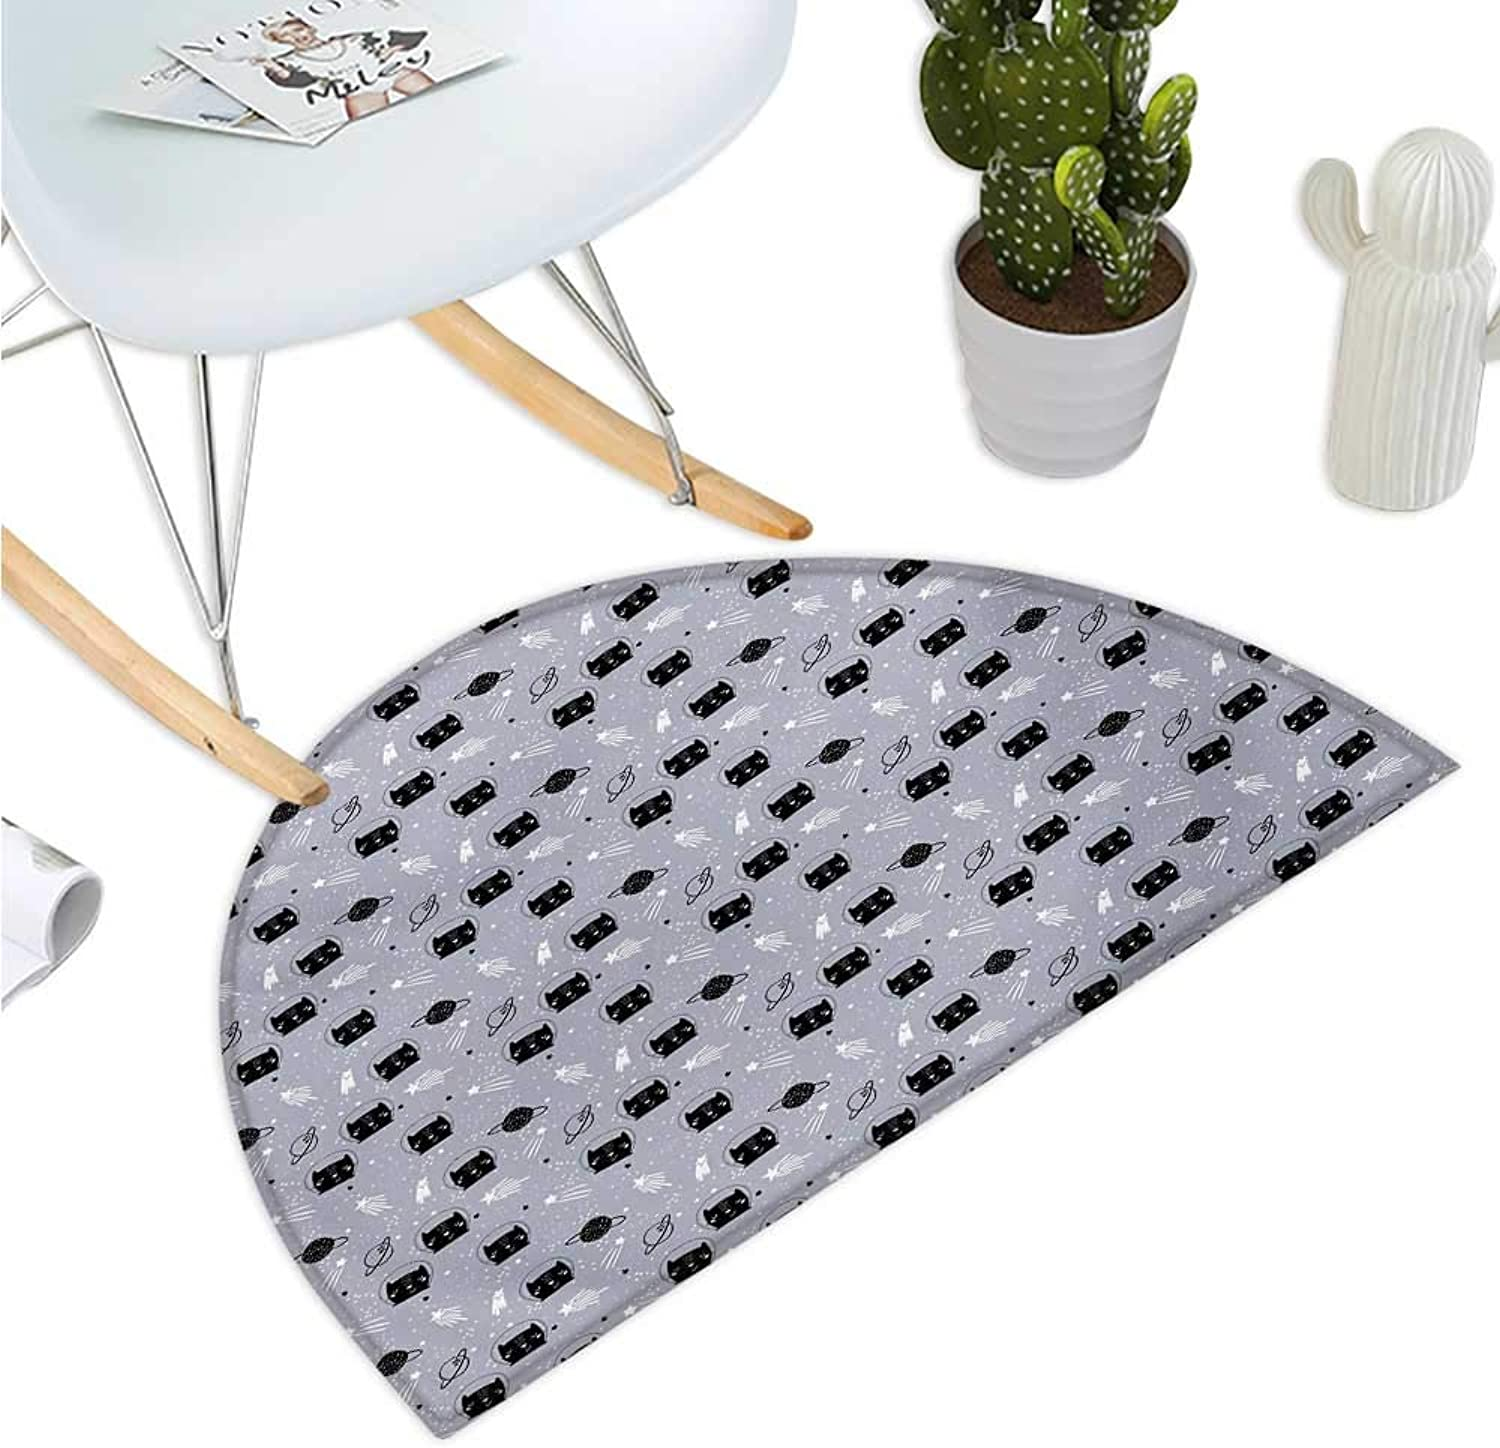 Outer Space Semicircular Cushion Astronaut Cats Exploring The Universe on Dotted Background Halfmoon doormats H 47.2  xD 70.8  Purple Grey Black and White